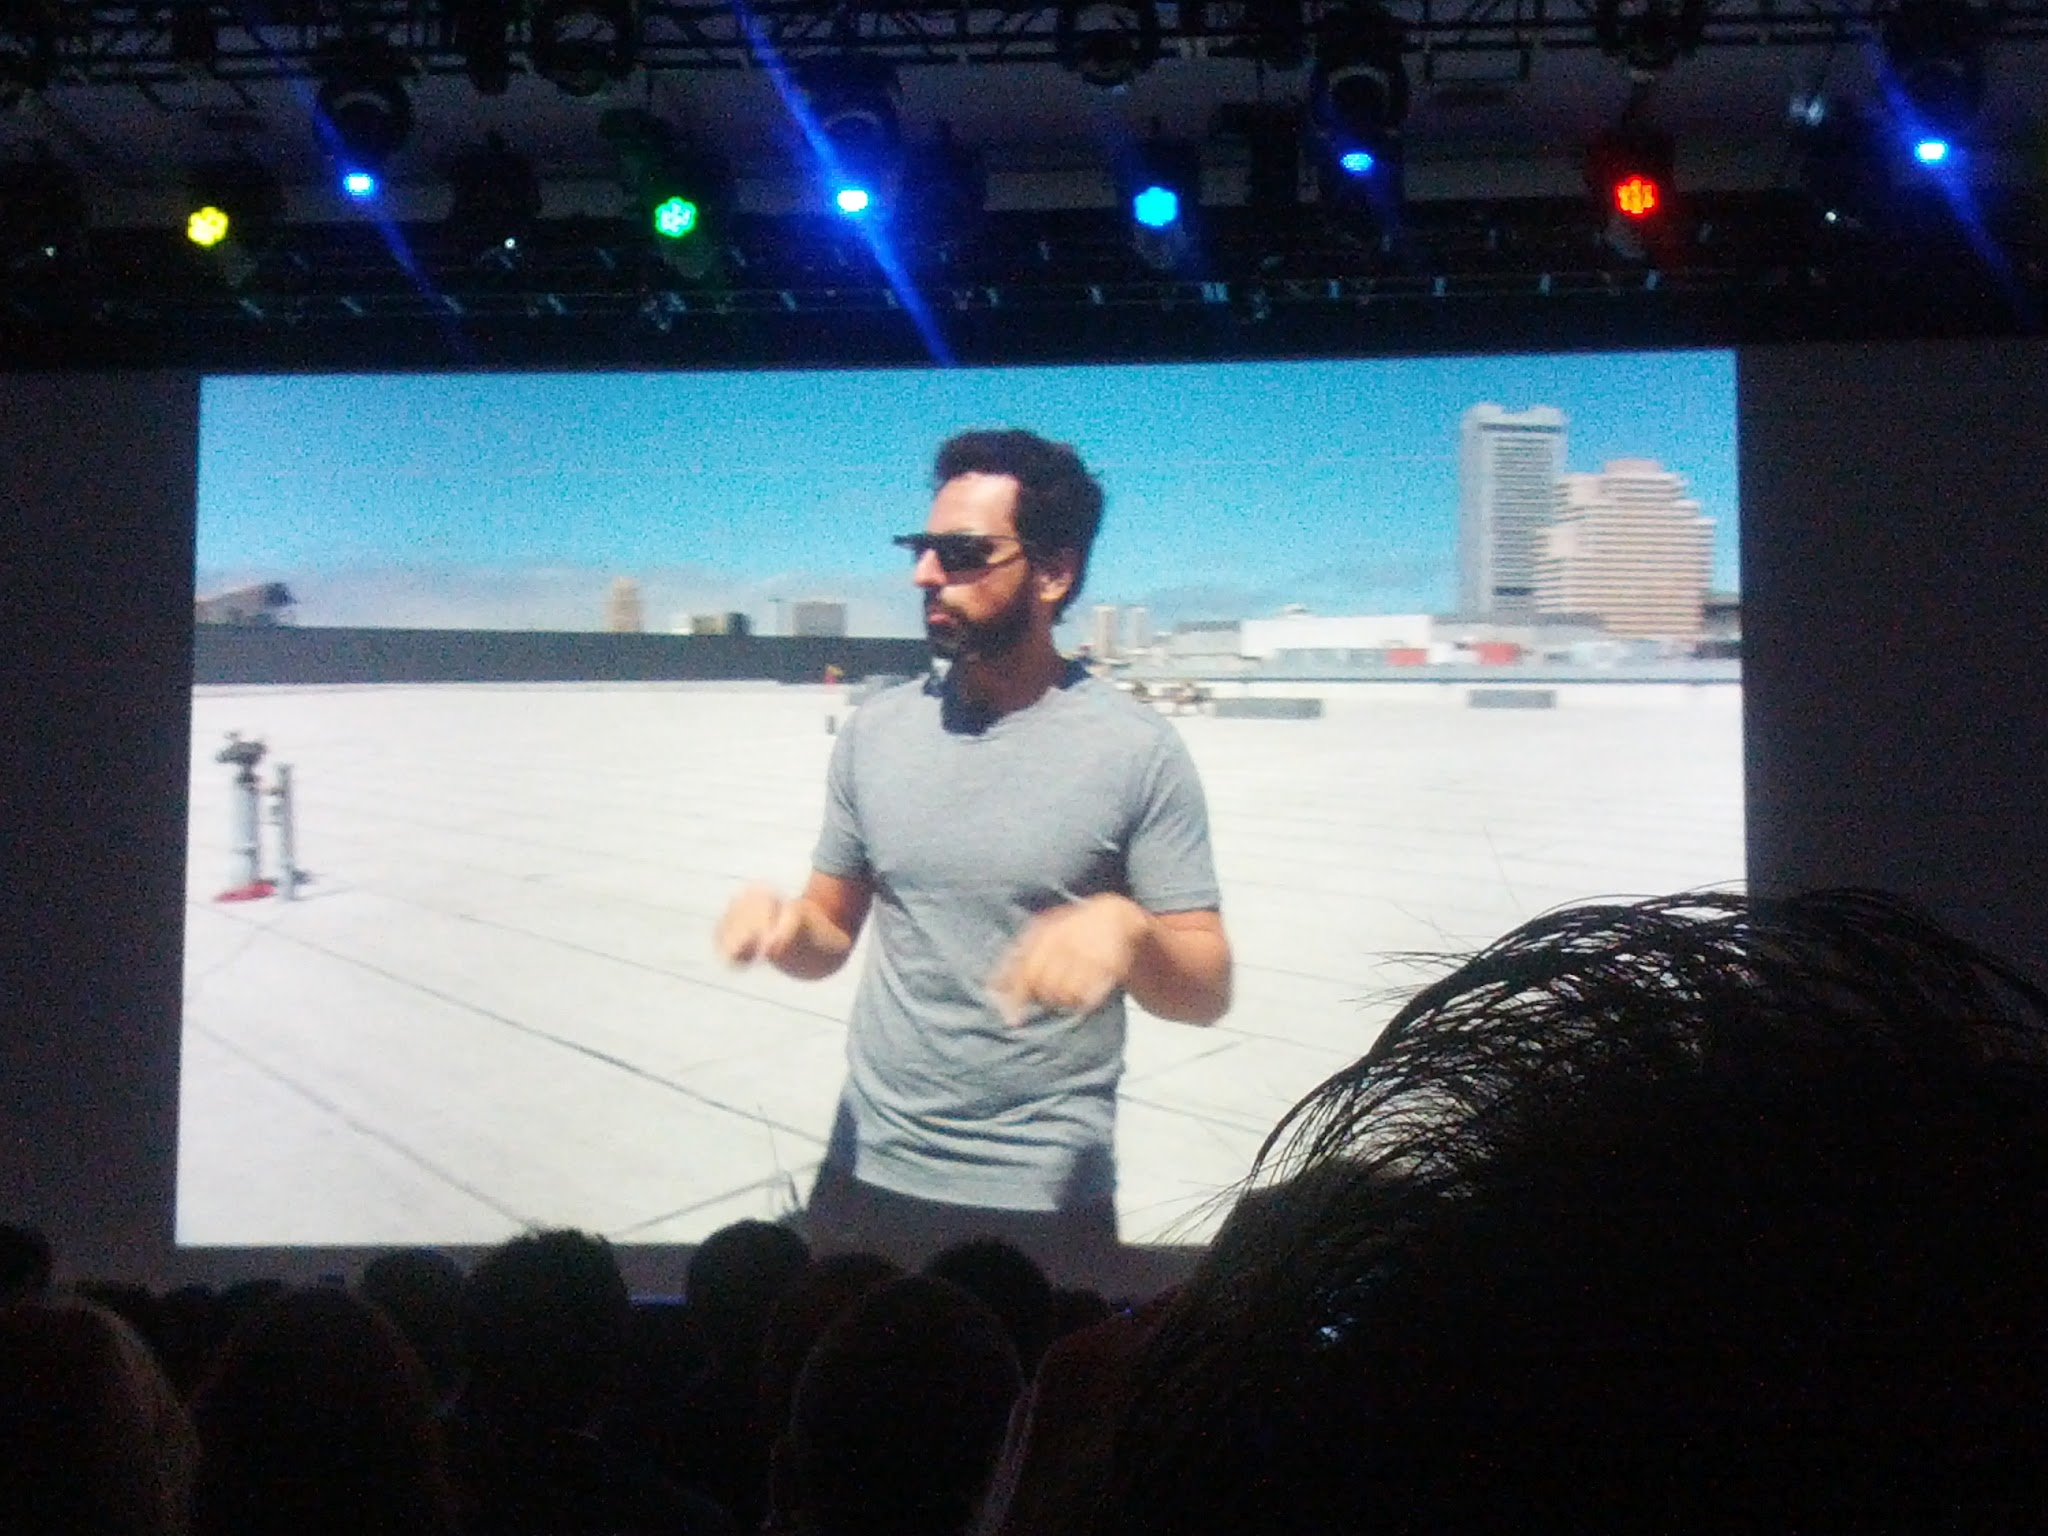 Sergey Brin sends out a welcome note to developers who pre-ordered Google Glass